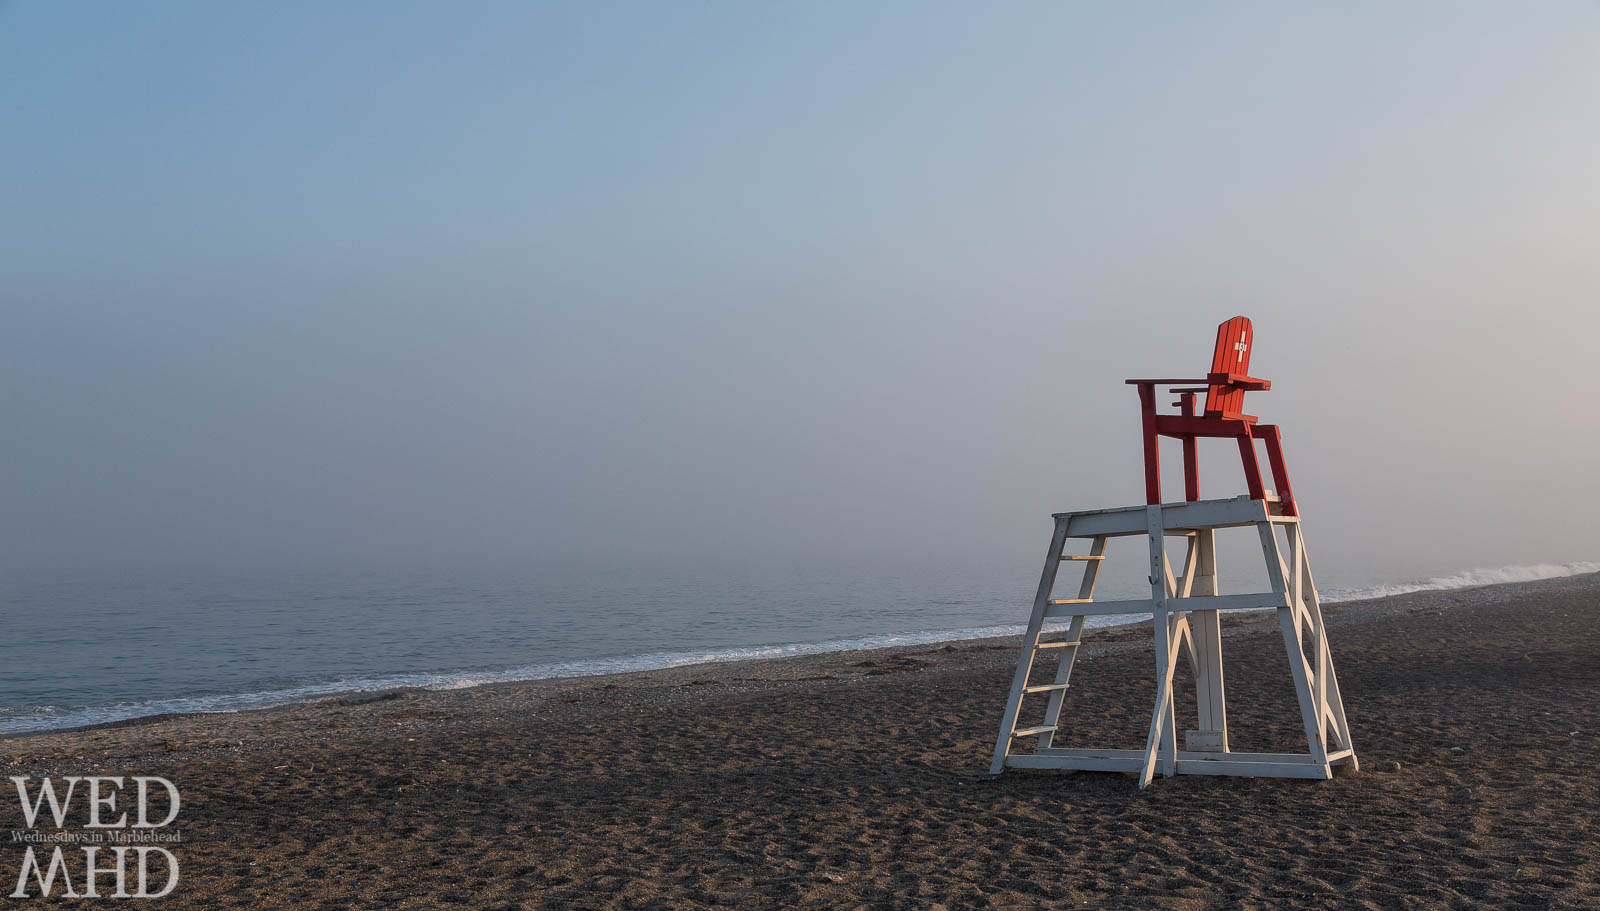 A lifeguard chair stands alone on an empty Devereux beach while fog obliterates the horizon